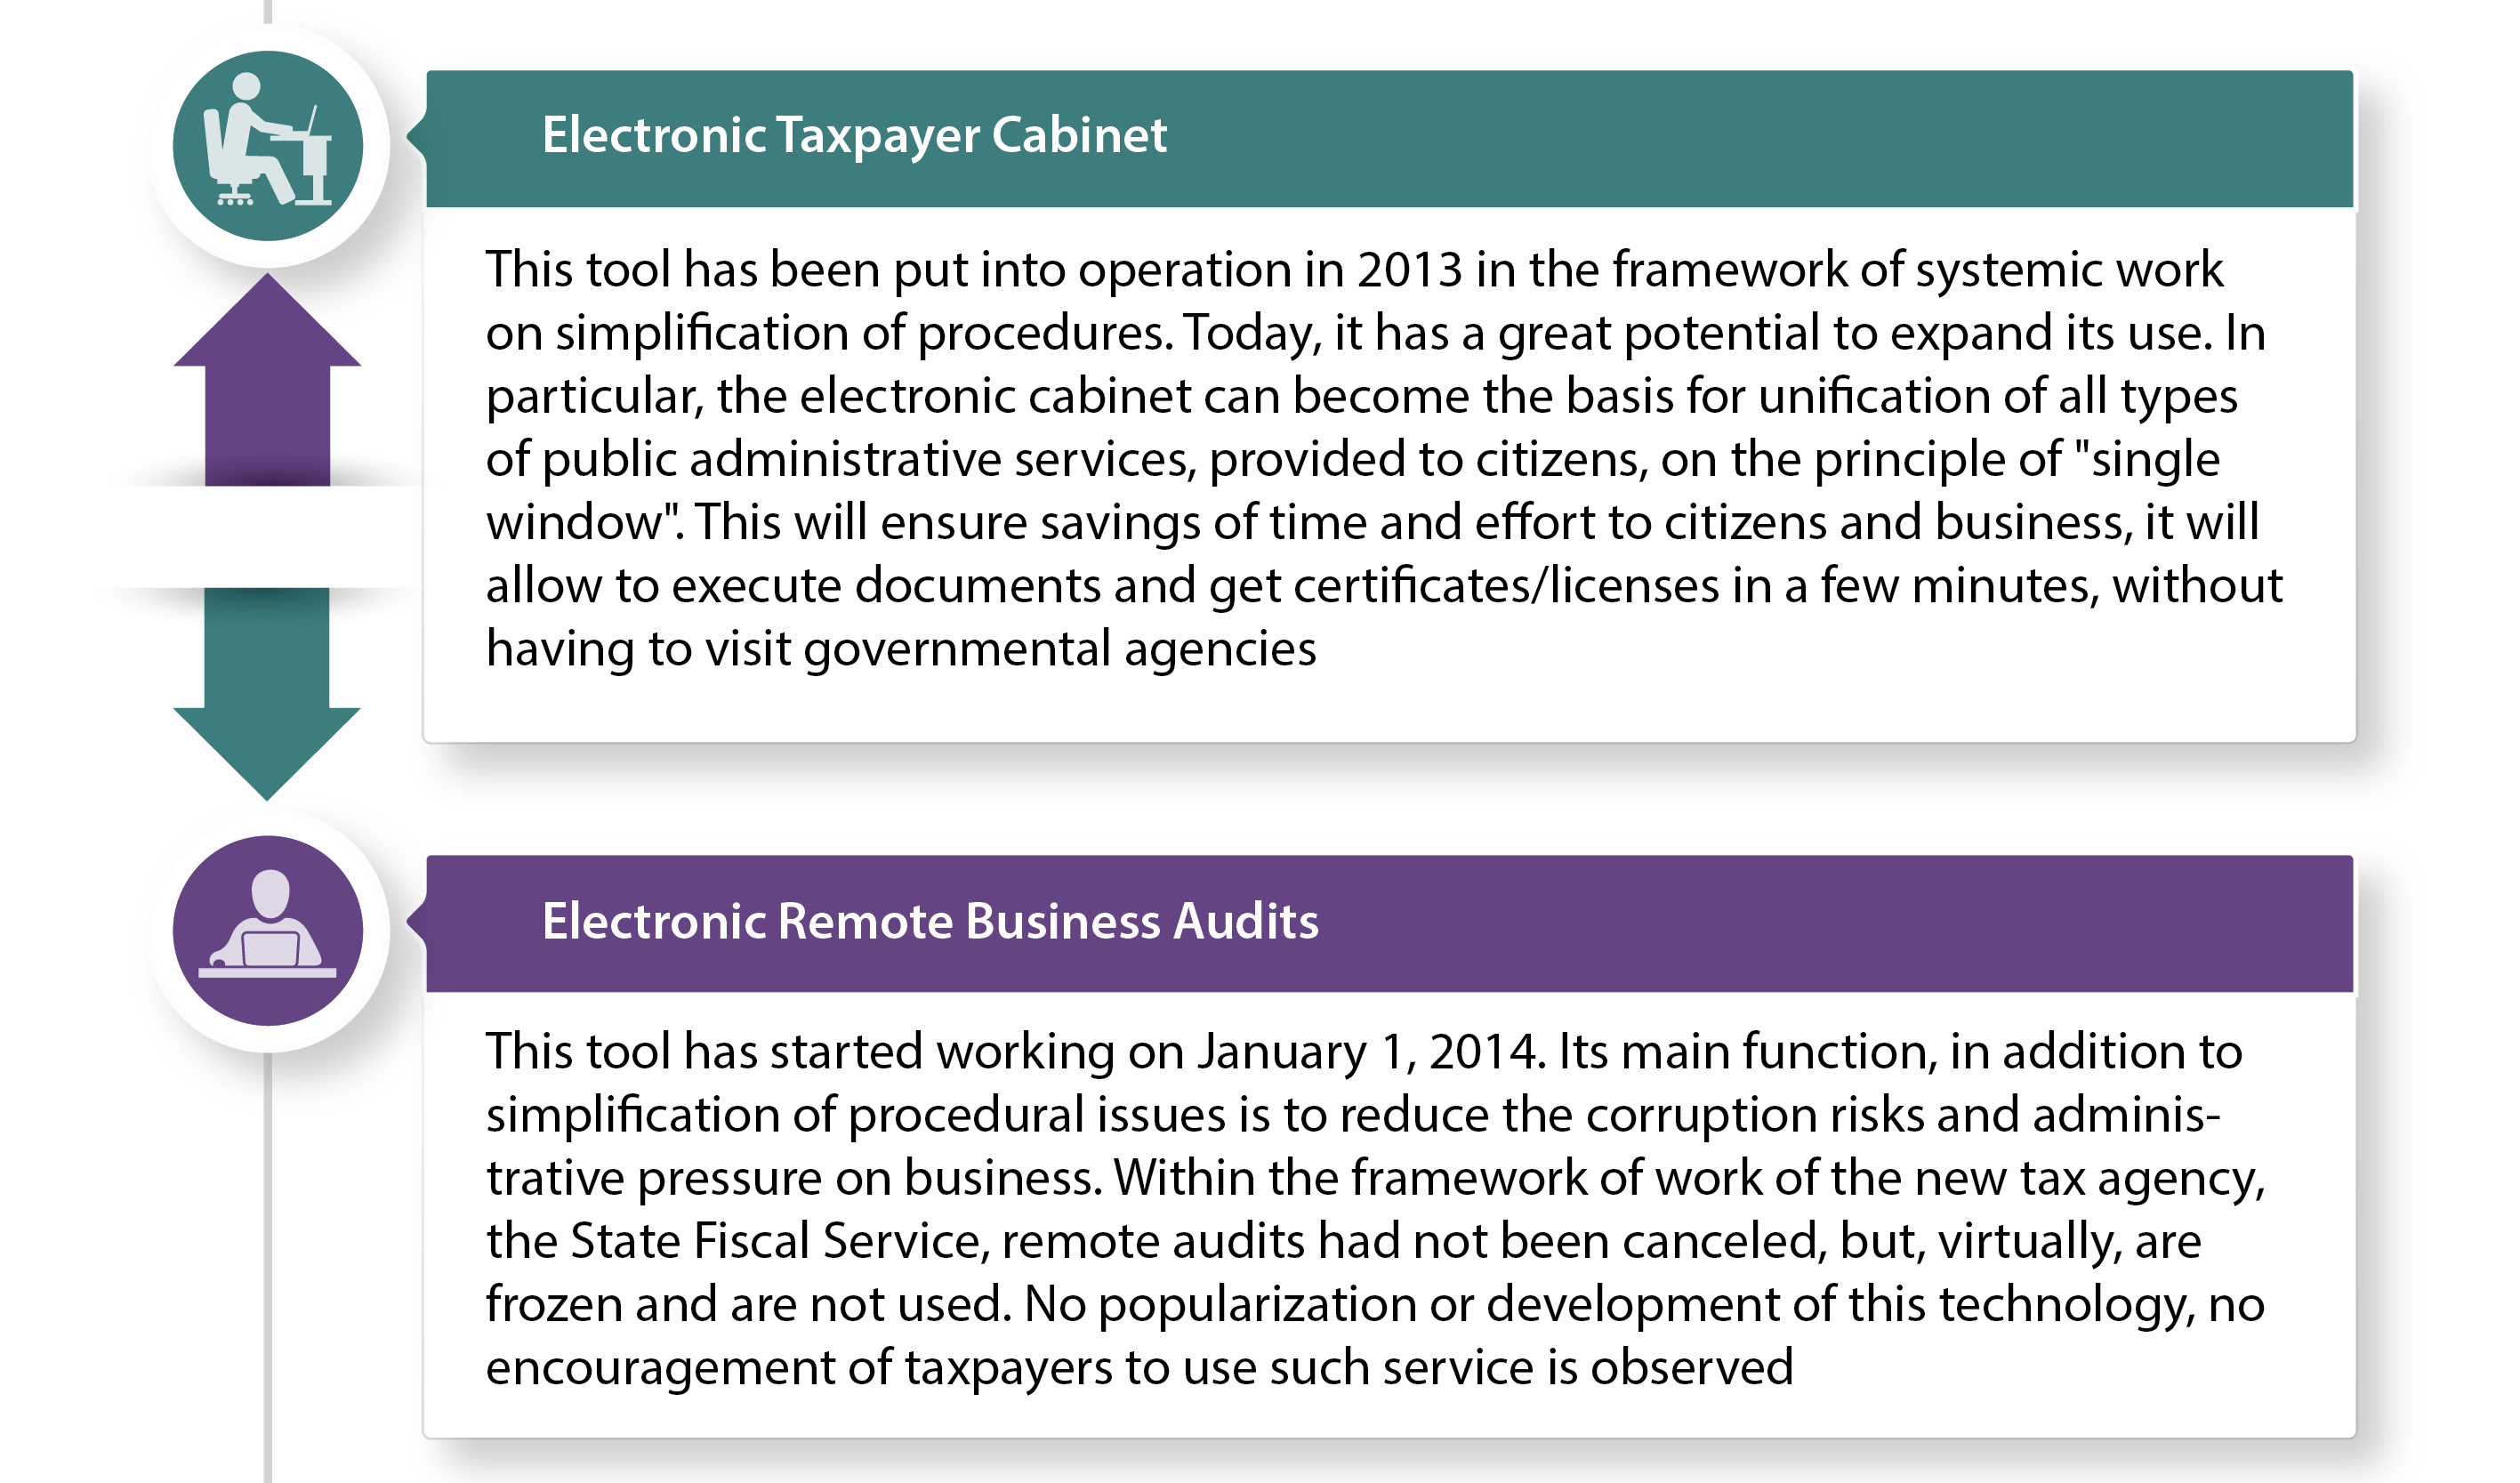 A full-scale launch of the Electronic Taxpayer Cabinet and Electronic Remote Business Audits